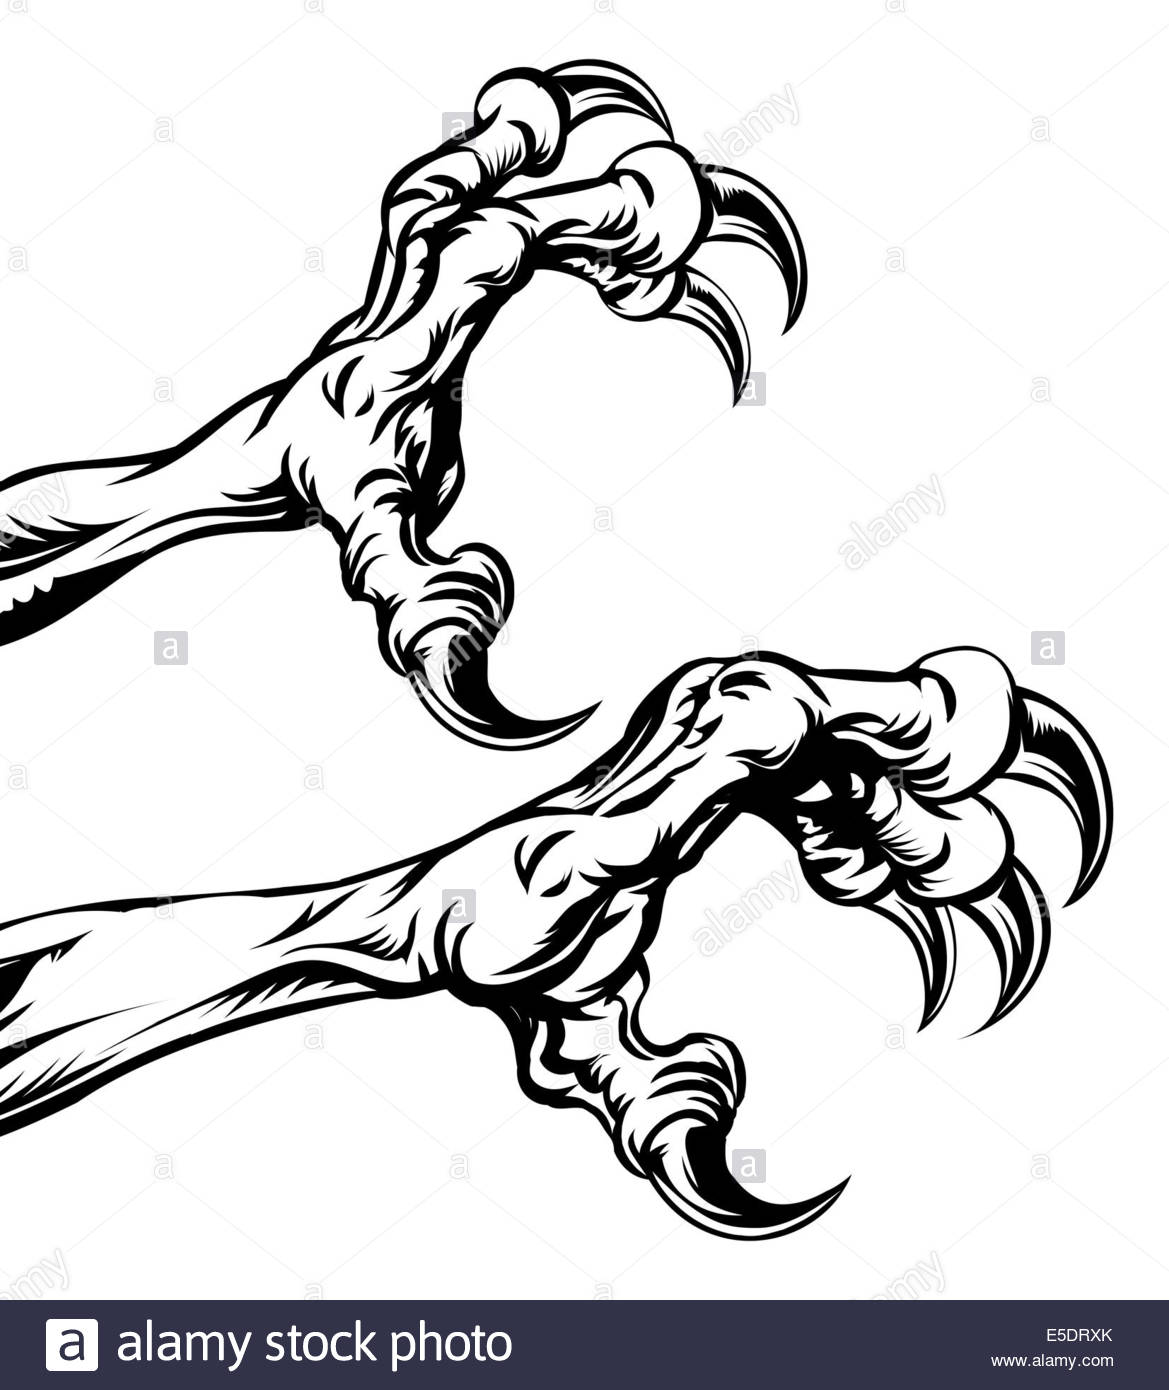 1169x1390 An Illustration Of Eagle Or Monster Animal Claws Or Talons Stock